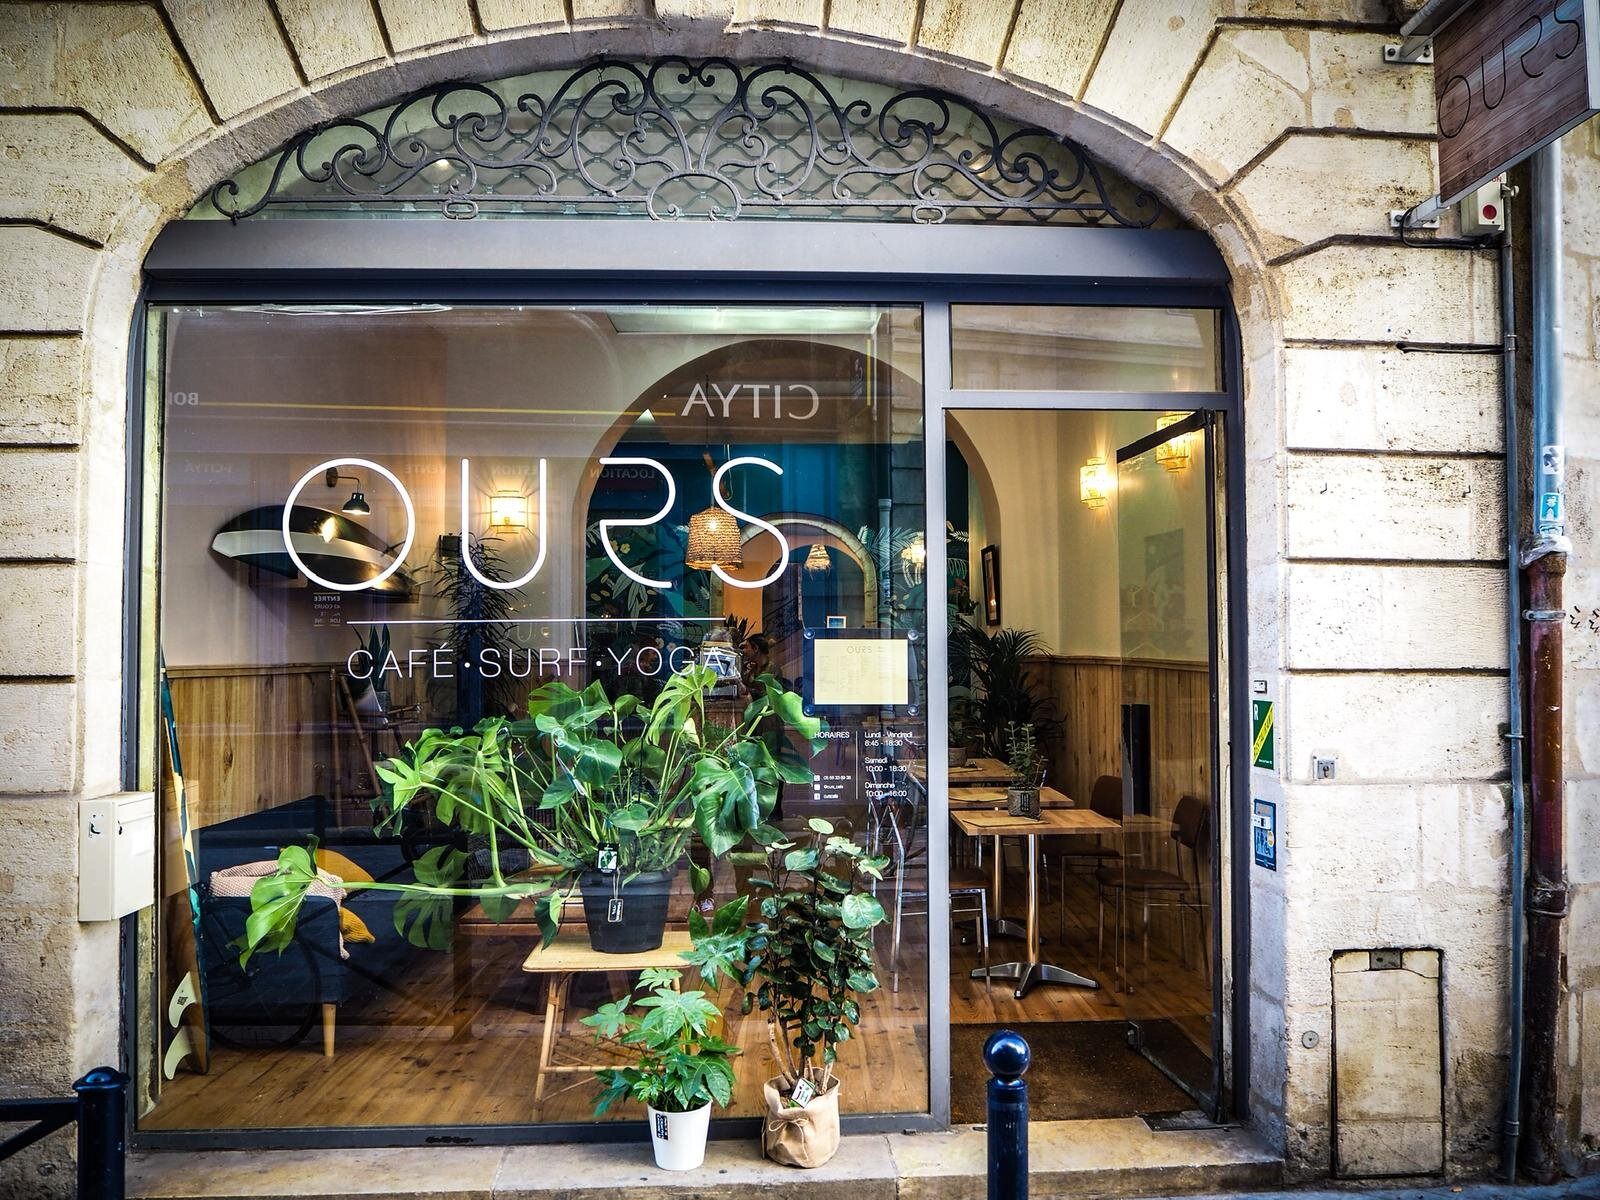 Virginie-sourou-hypnotherapie-meditation-bordeaux-atelier-cafe-ours-surf-yoga